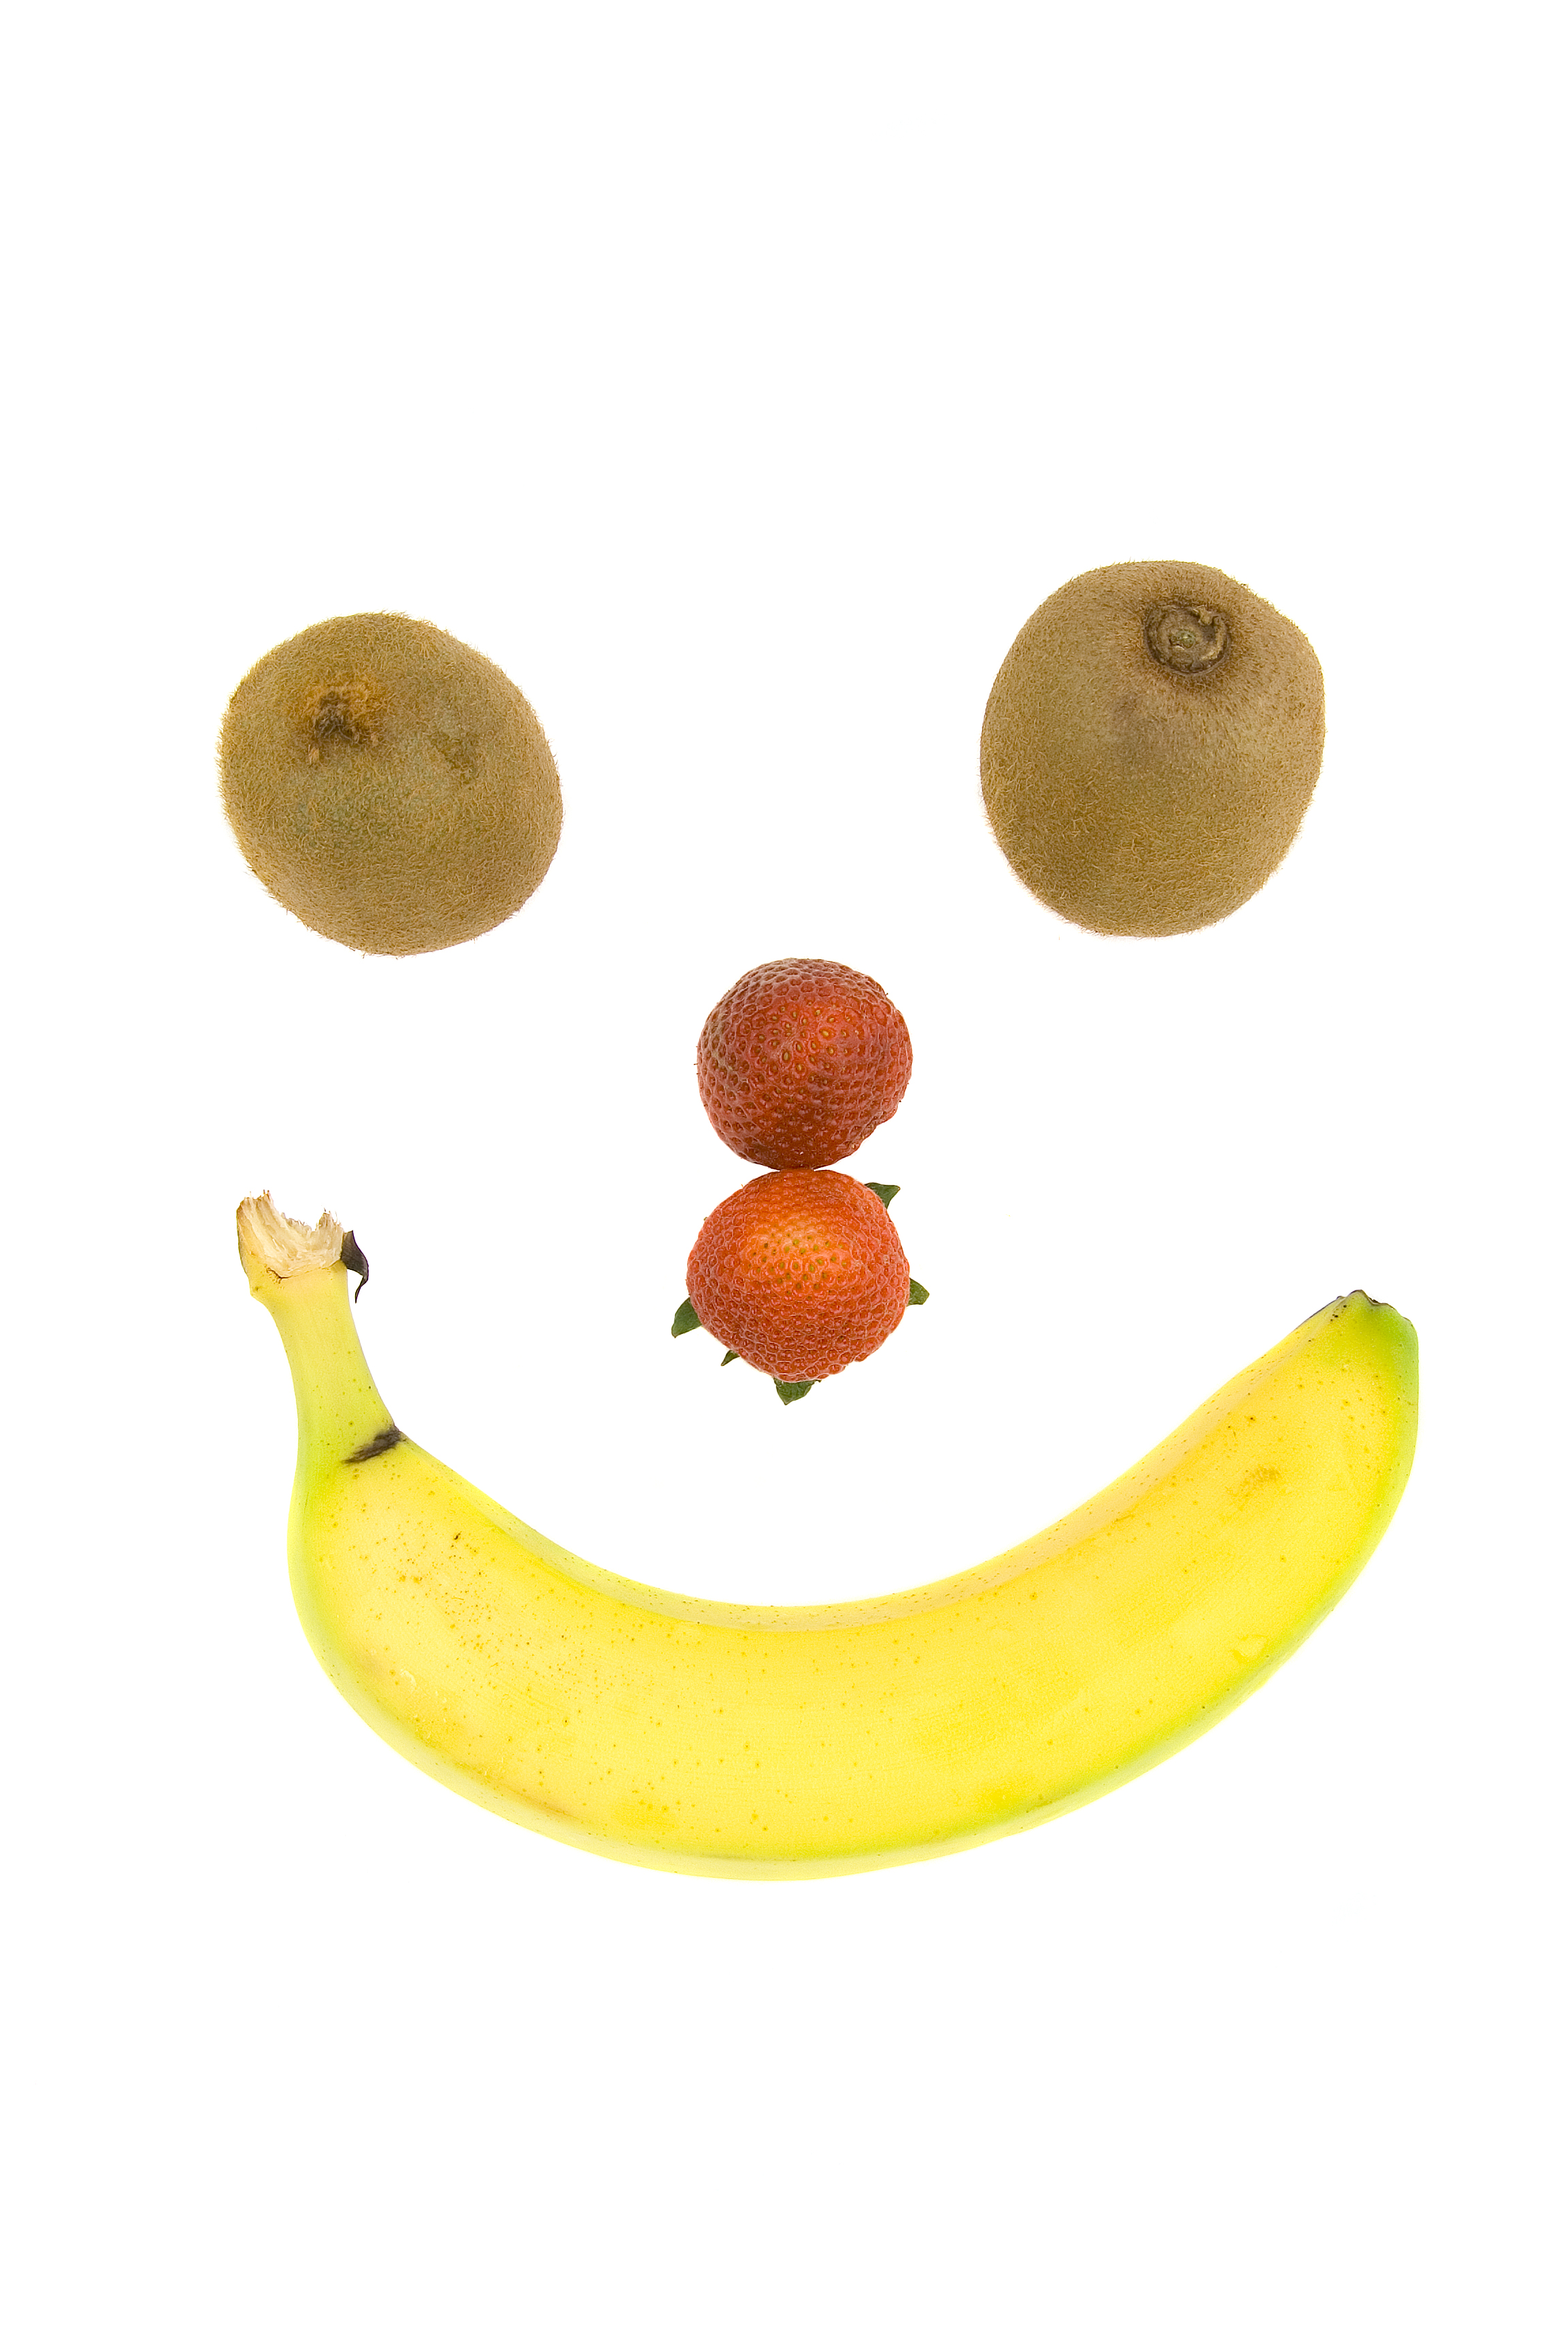 11 Emoticon Eating Healthy Foods Images